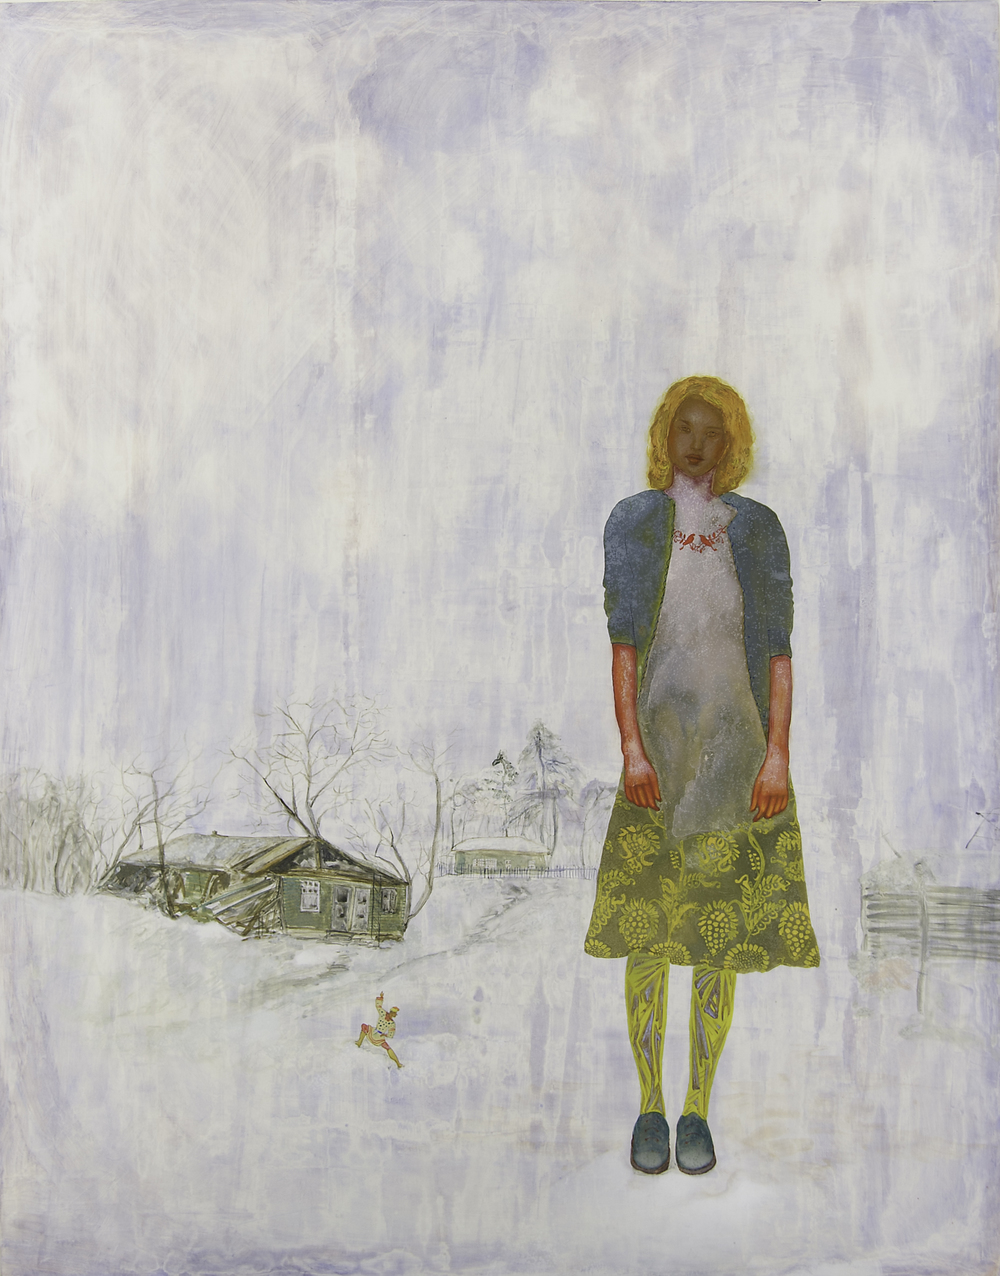 SMIRNOFF A Girl on The Snow Ball, 90x70, Egg Tempera on Wood, 2007.jpg